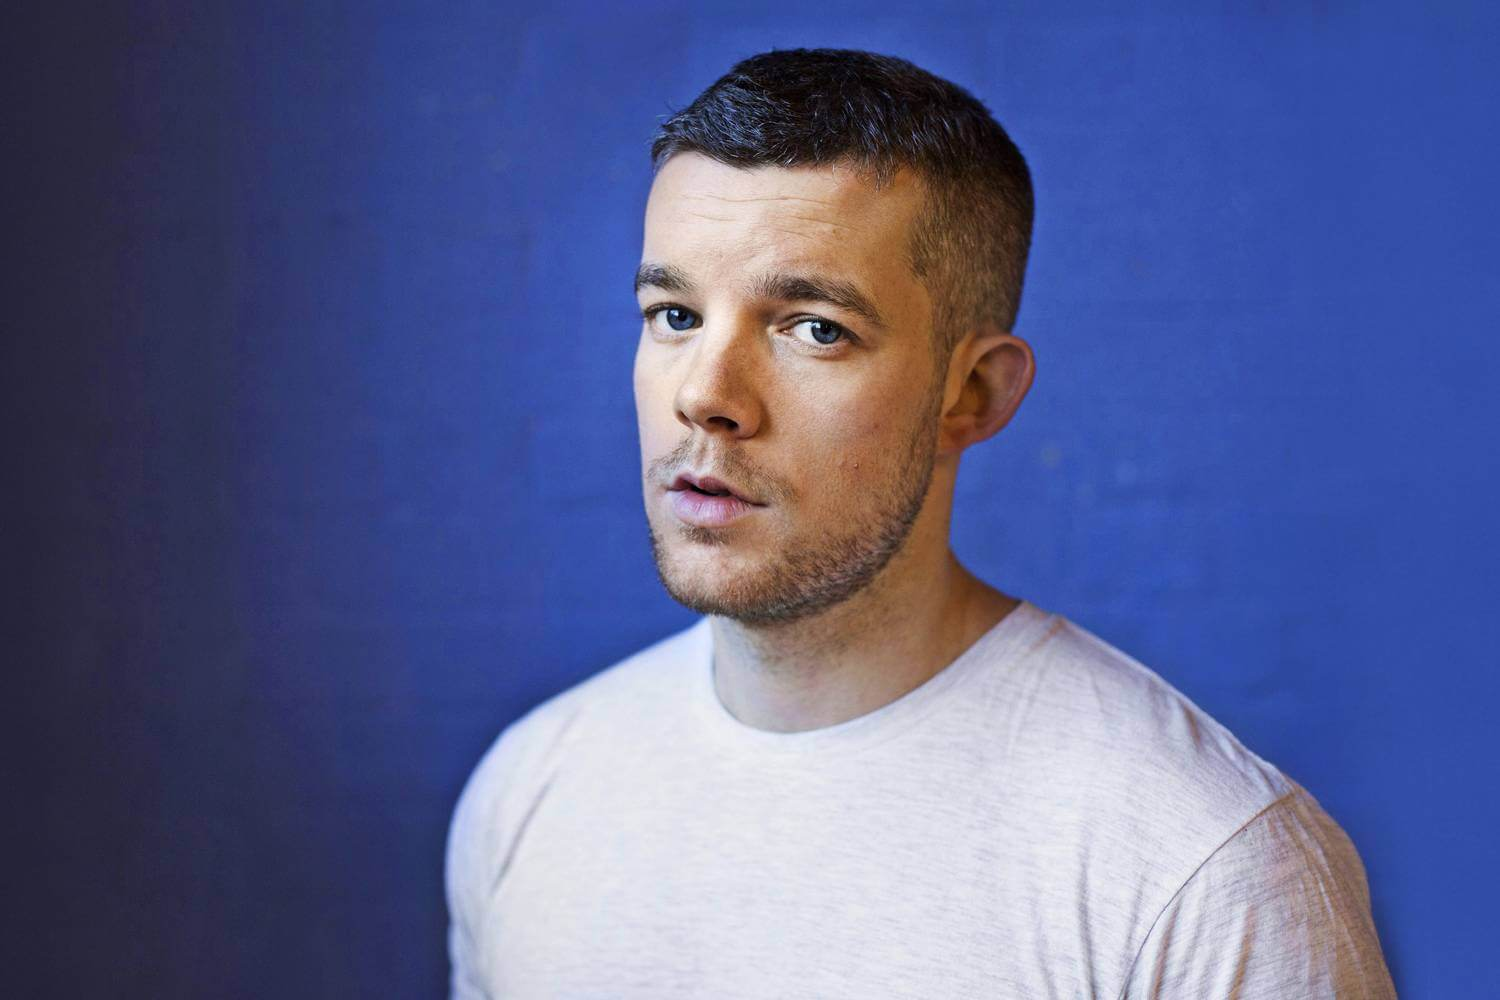 russell tovey interviews